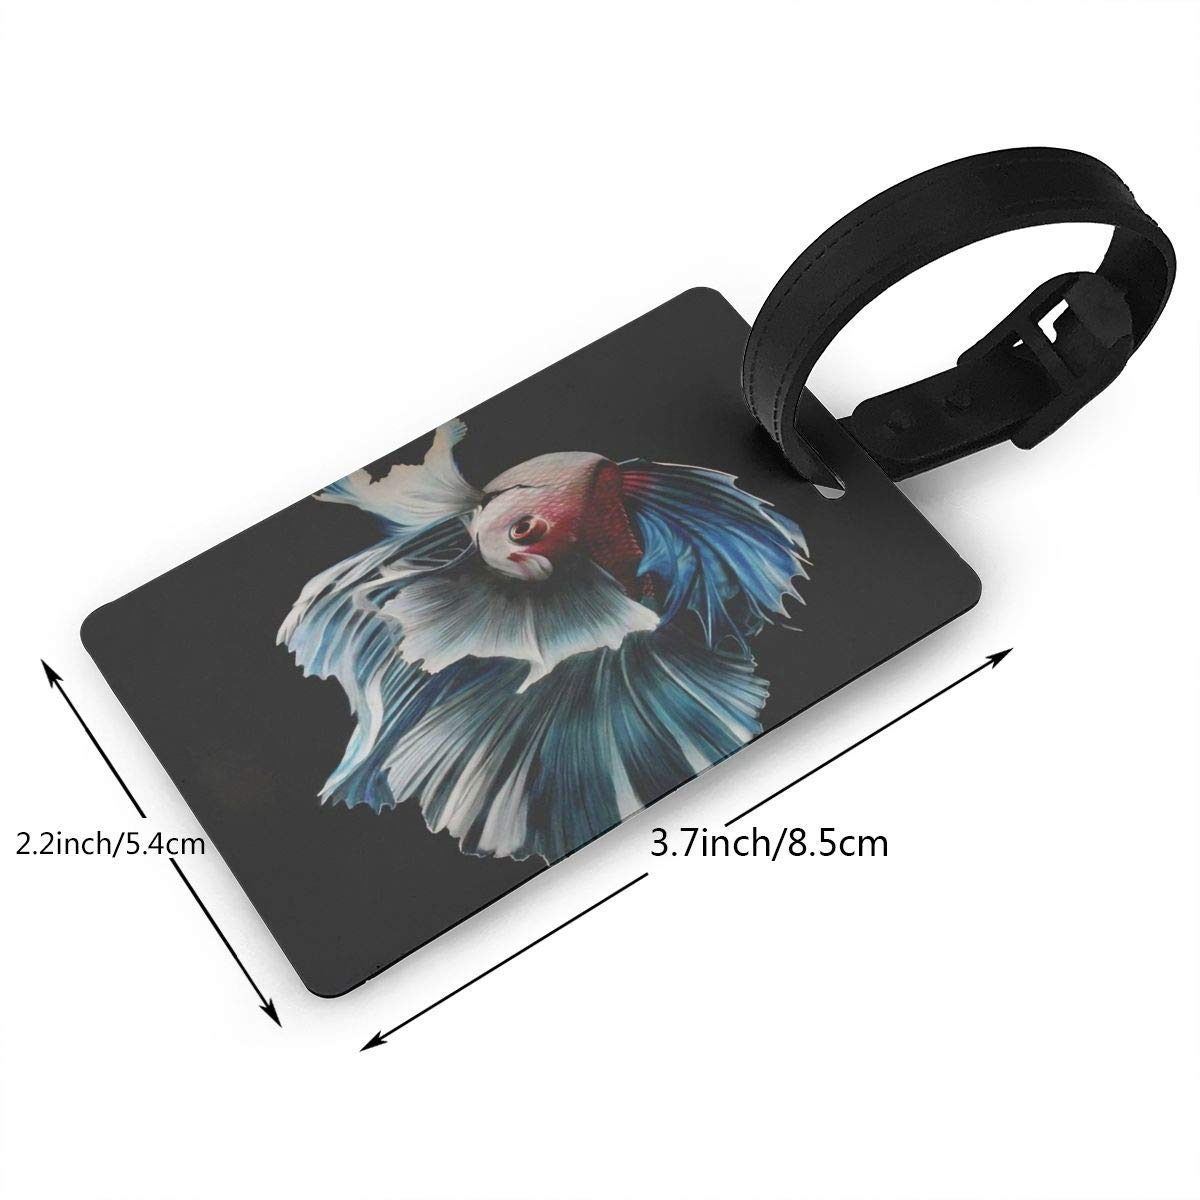 Betta Fish Handbag Tag For Travel Tags Accessories 2 Pack Luggage Tags